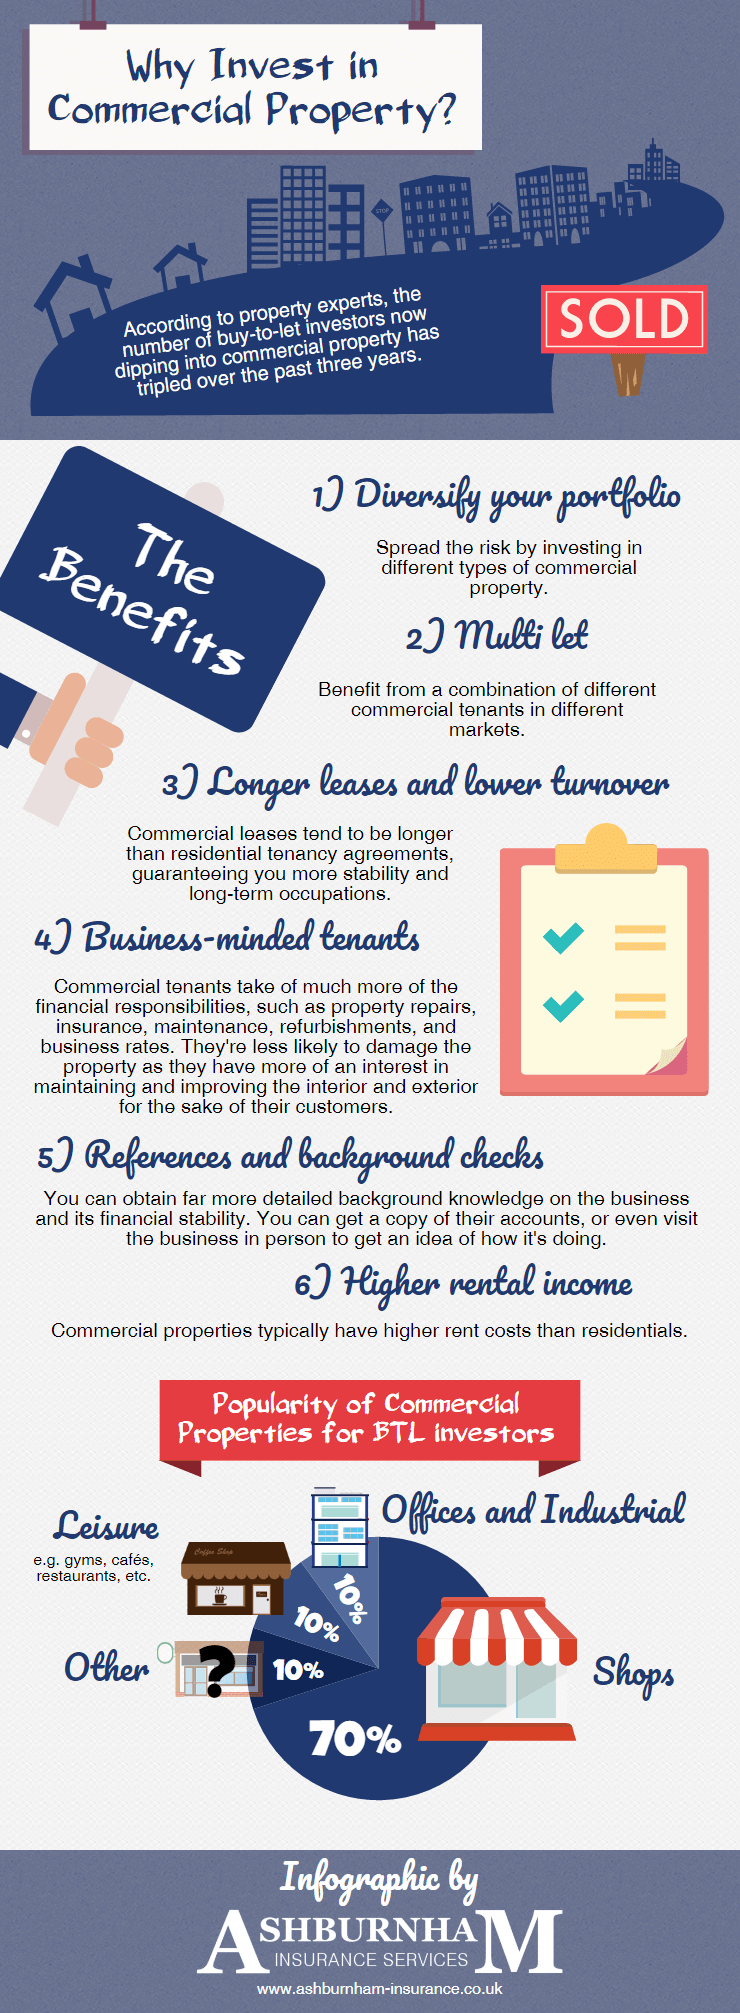 Why Invest in Commercial Property? Infographic